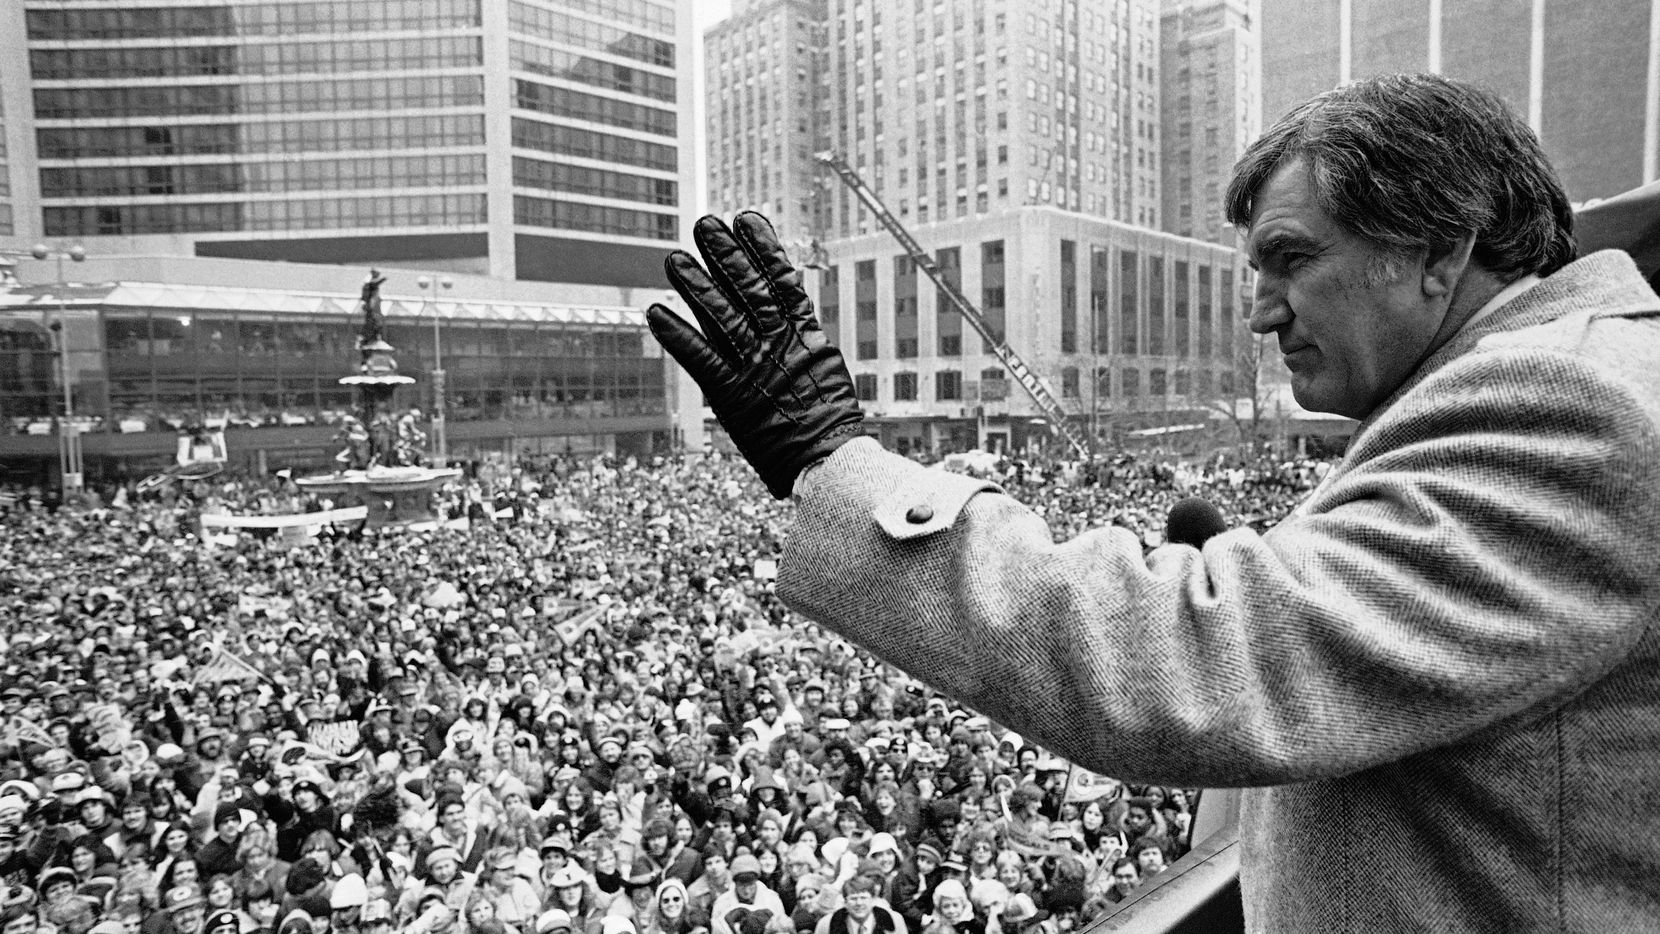 FILE - In this Jan. 25, 1982, file photo, Cincinnati Bengals head coach Forrest Gregg waves to the crowd in Cincinnati. The Bengals lost to the San Francisco 49ers in the Super Bowl the day before. The Pro Football Hall of Fame says Green Bay Packers great Forrest Gregg has died. He was 85. The Hall did not disclose details about his death in its statement Friday, April 12, 2019.(AP Photo/Ed Reinke, File)